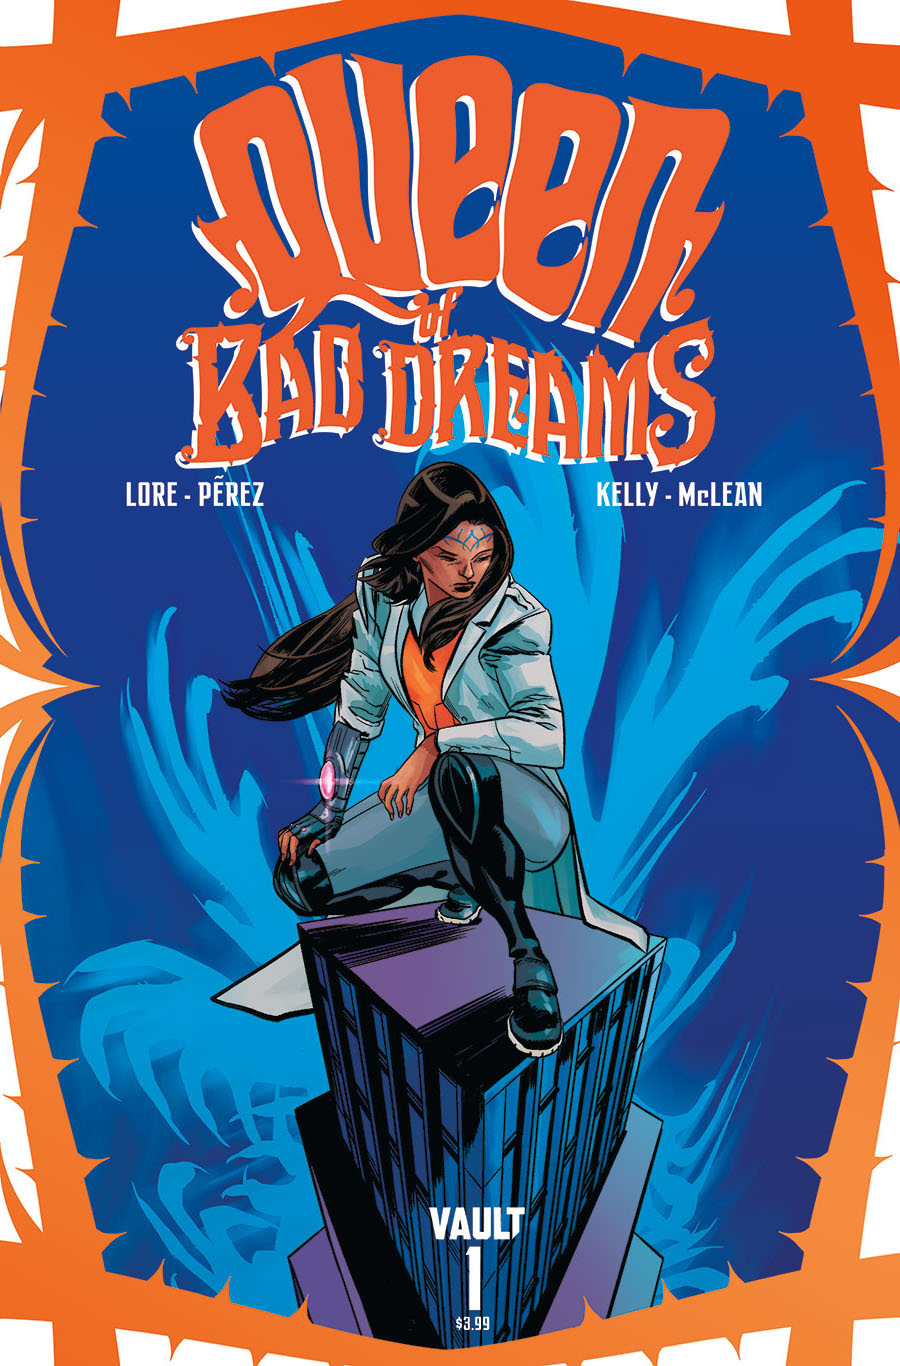 Queen of Bad Dreams #1  is out 4/24/2019.